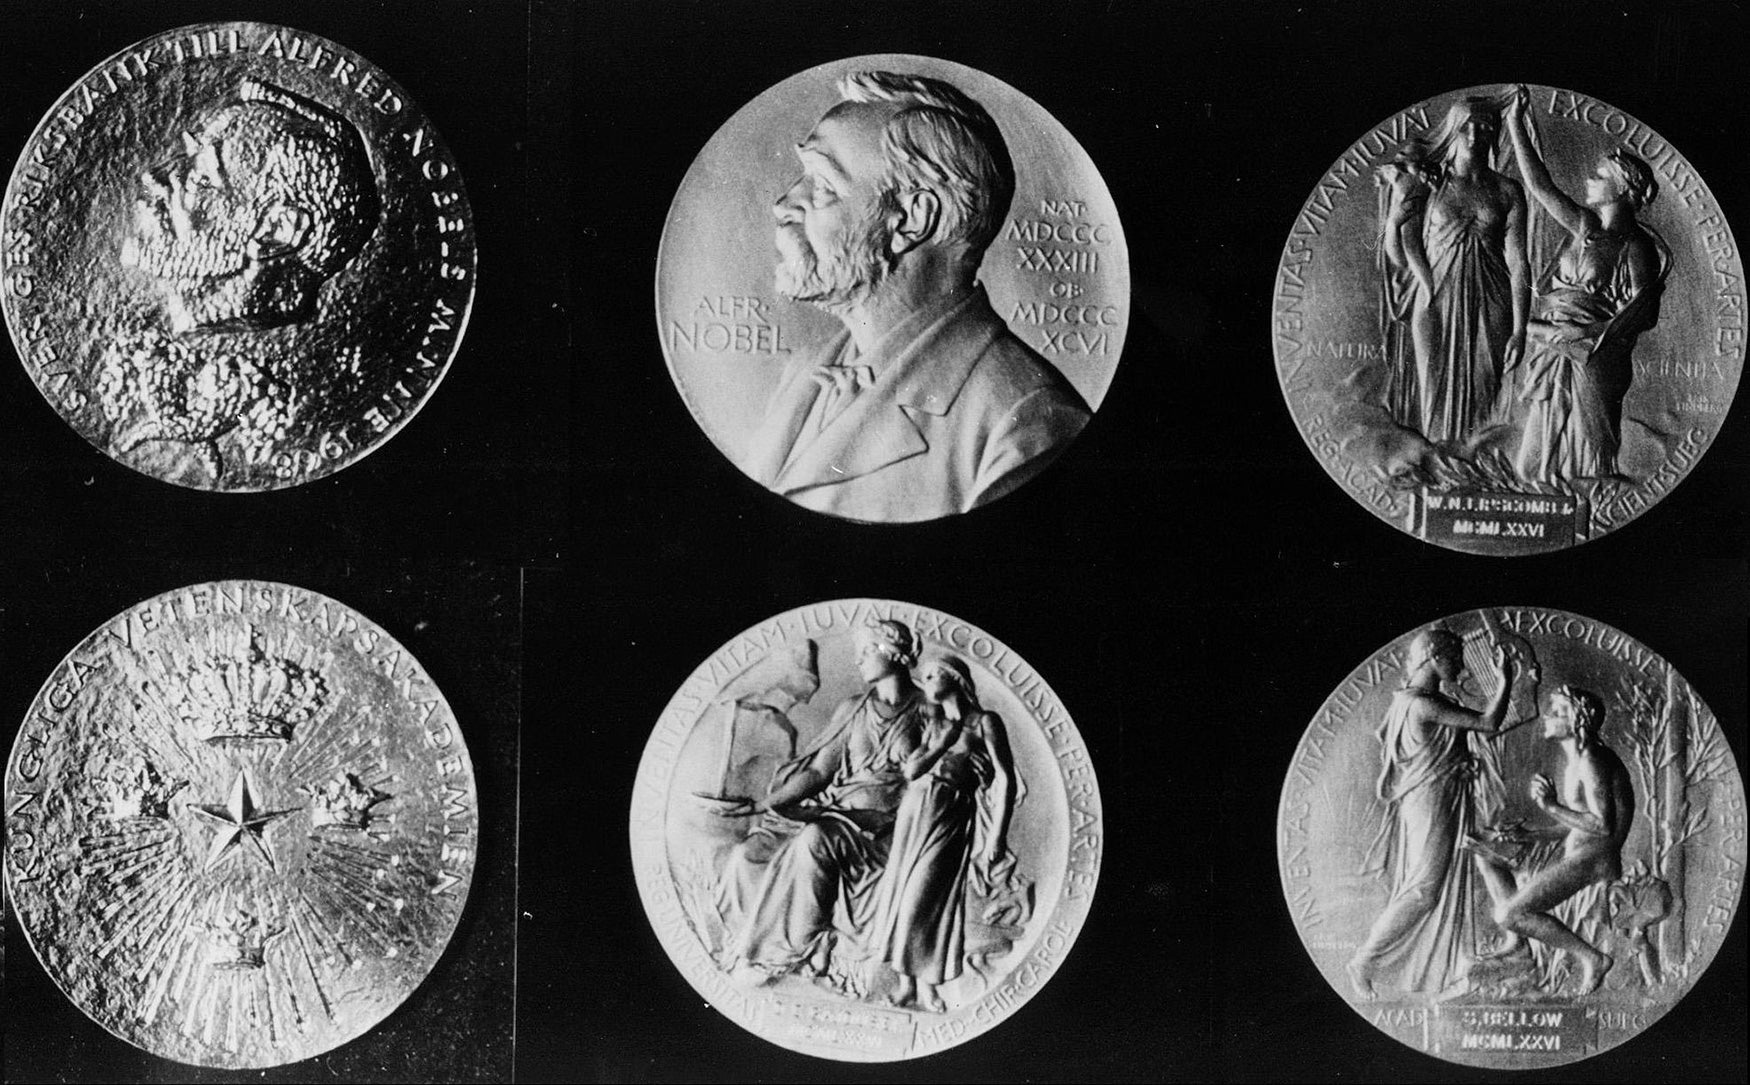 Histoires de Parfums - December 10th 1901: The first Nobel prizes